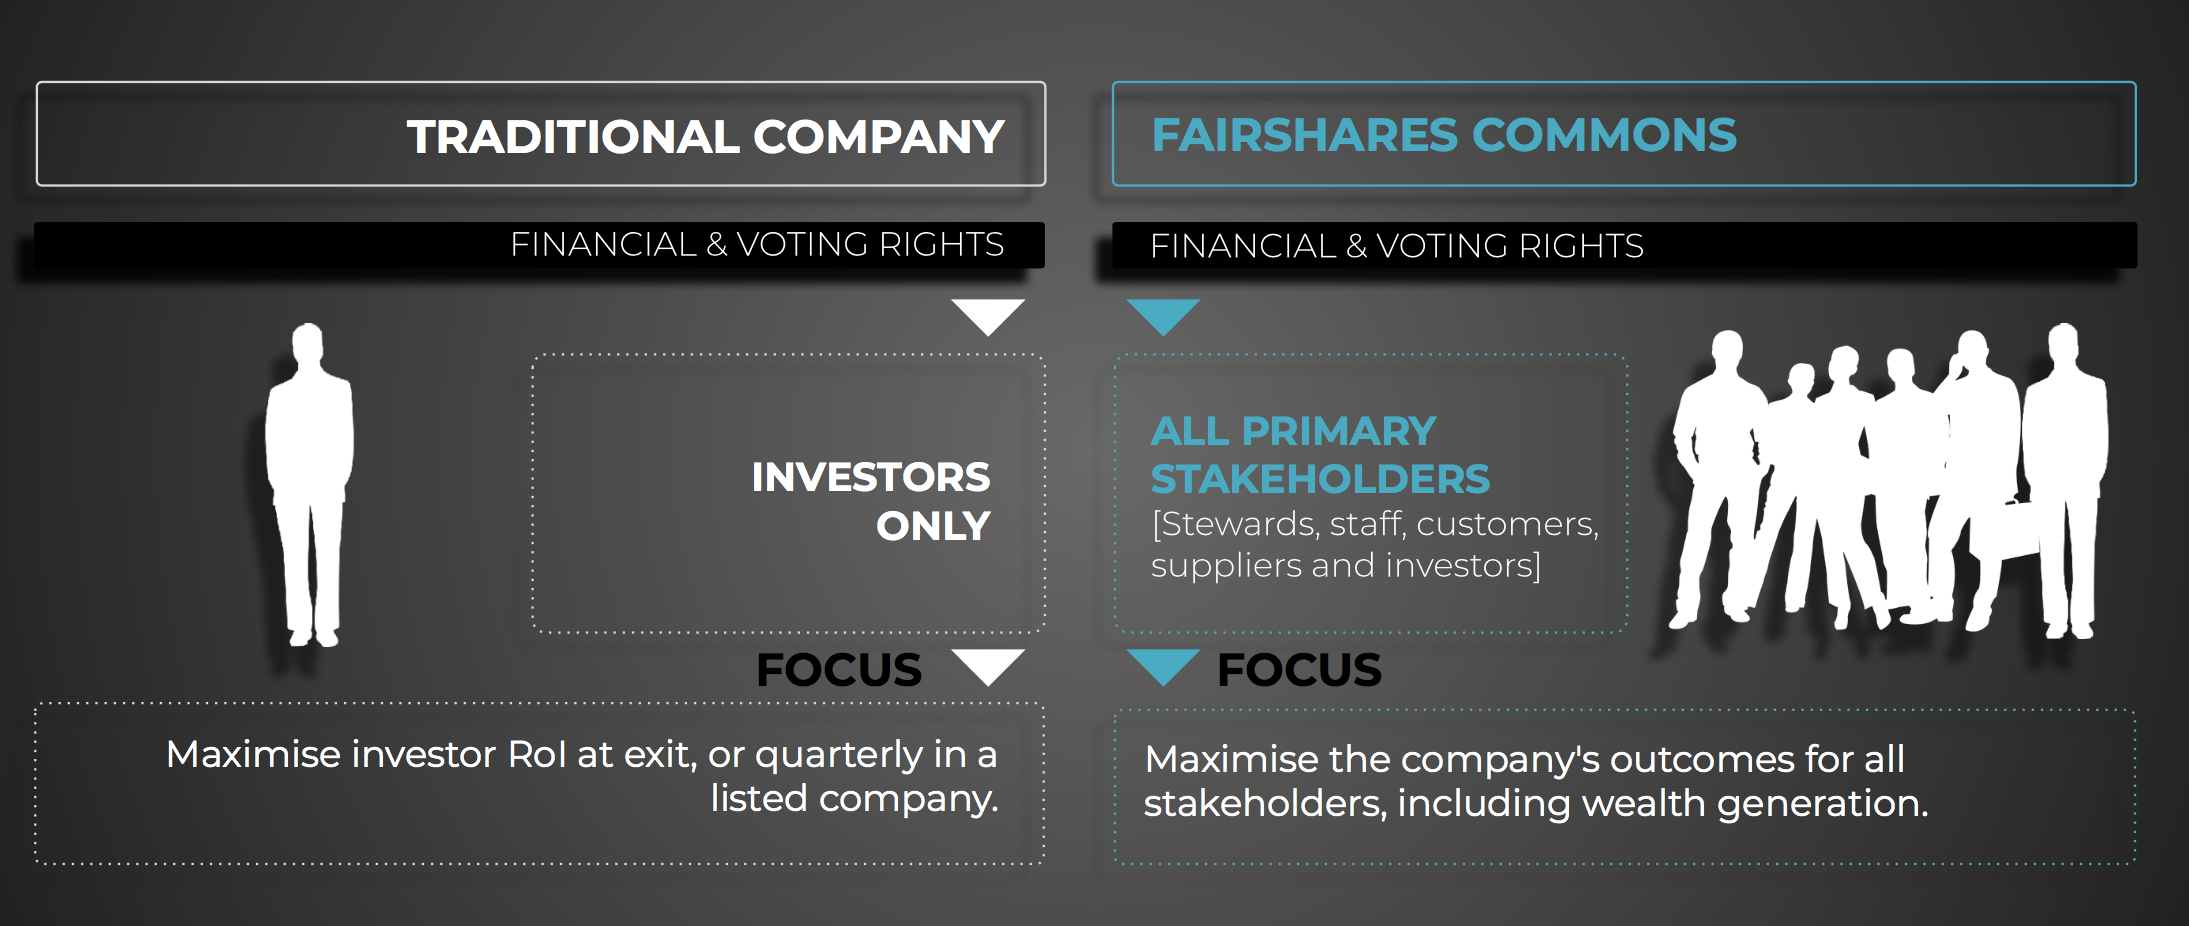 fairshare commons explainer